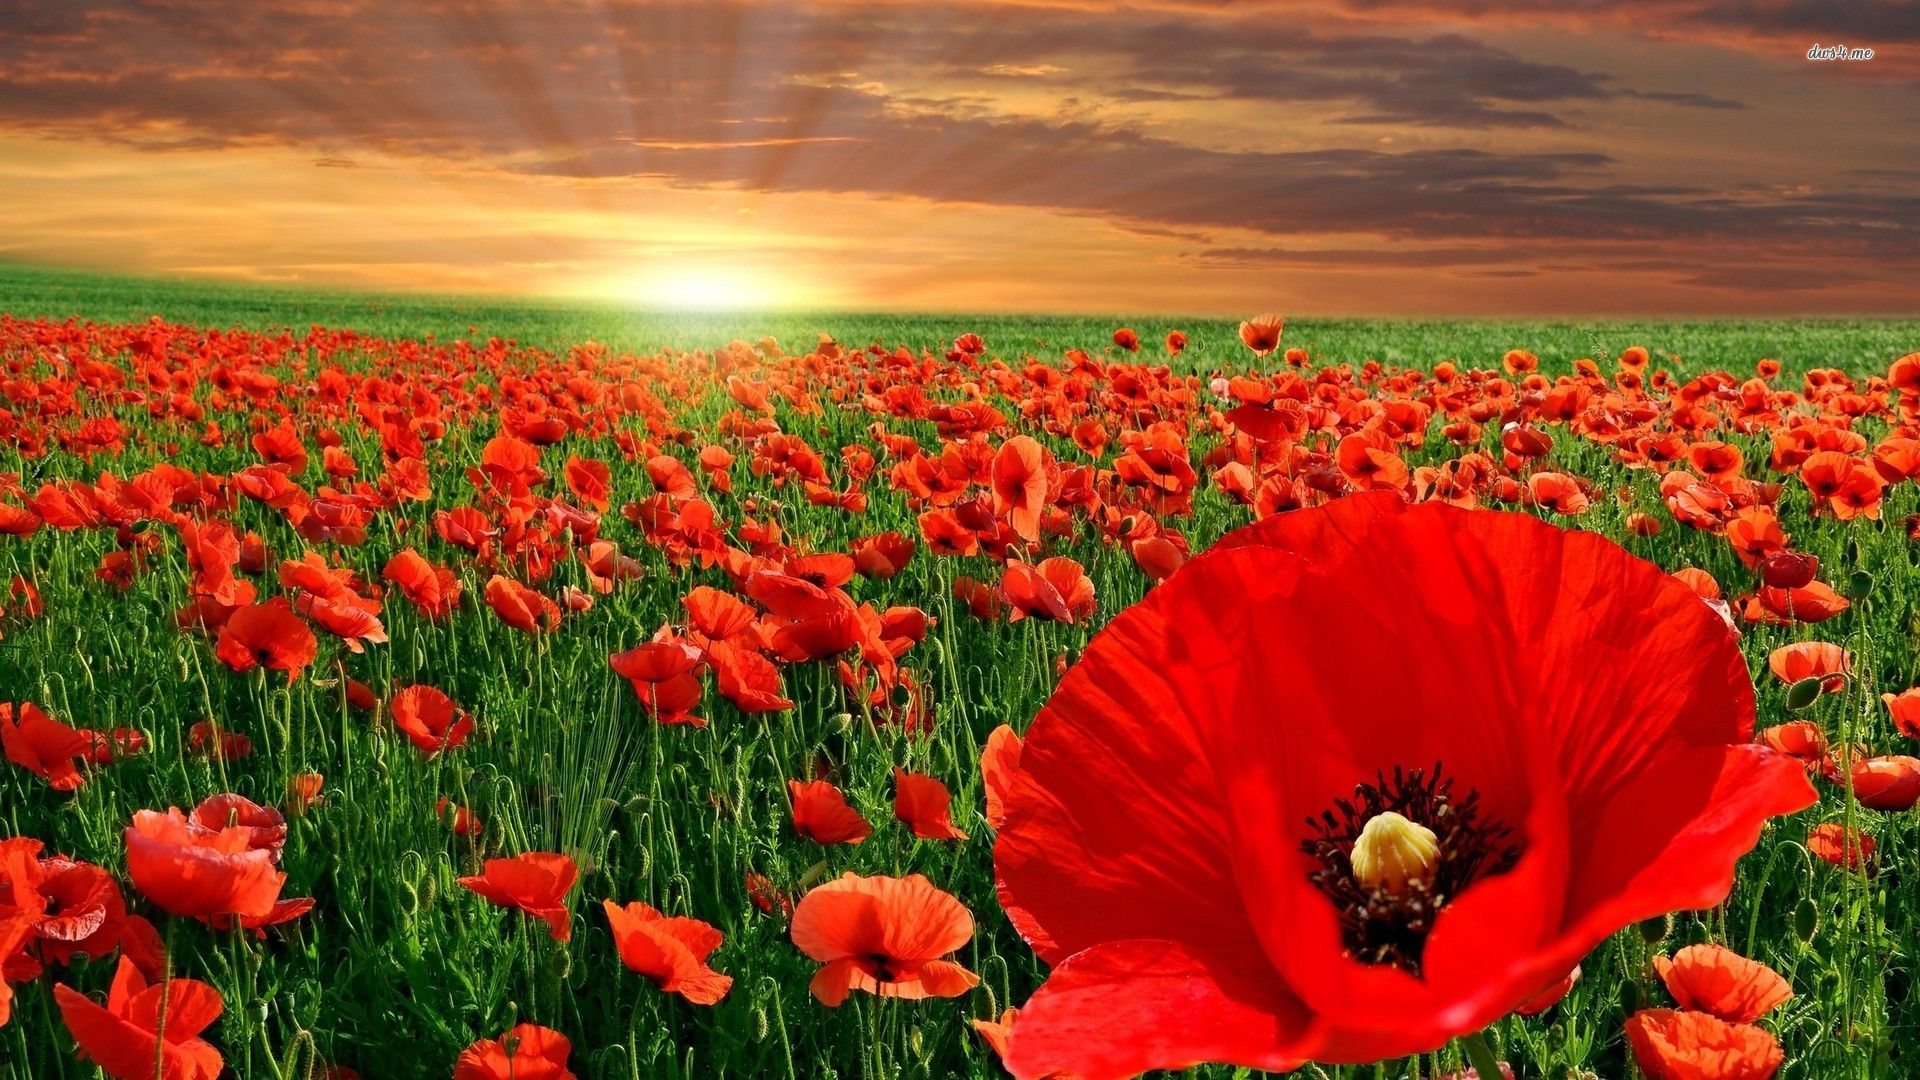 Pin by rezzan mentese on flowers pinterest poppies flower nature archives page 20 of 41 damnwallpapers mightylinksfo